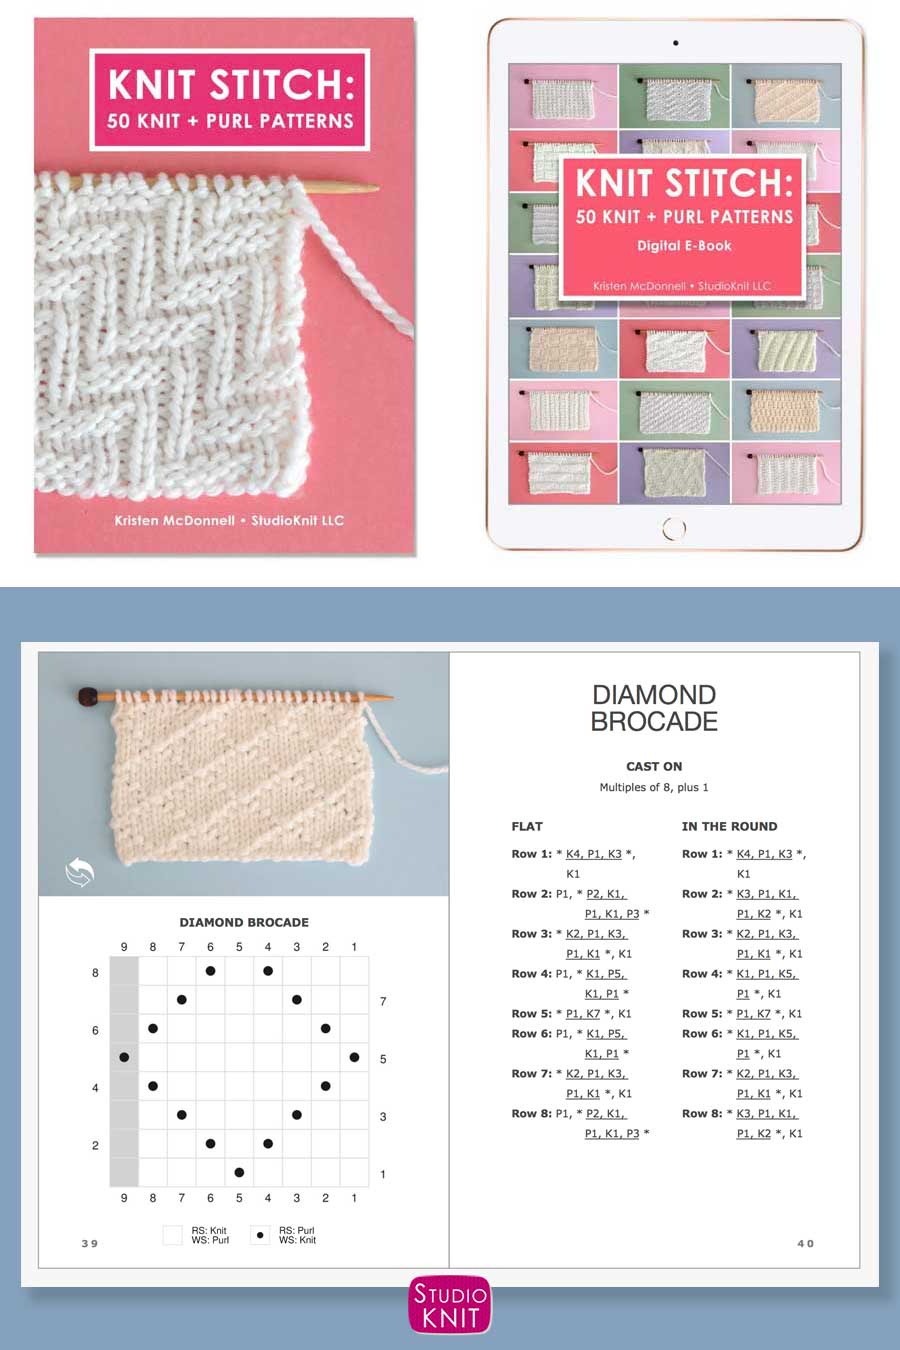 Knit Stitch Pattern Book with Diamond Brocade Stitch Pattern by Studio Knit